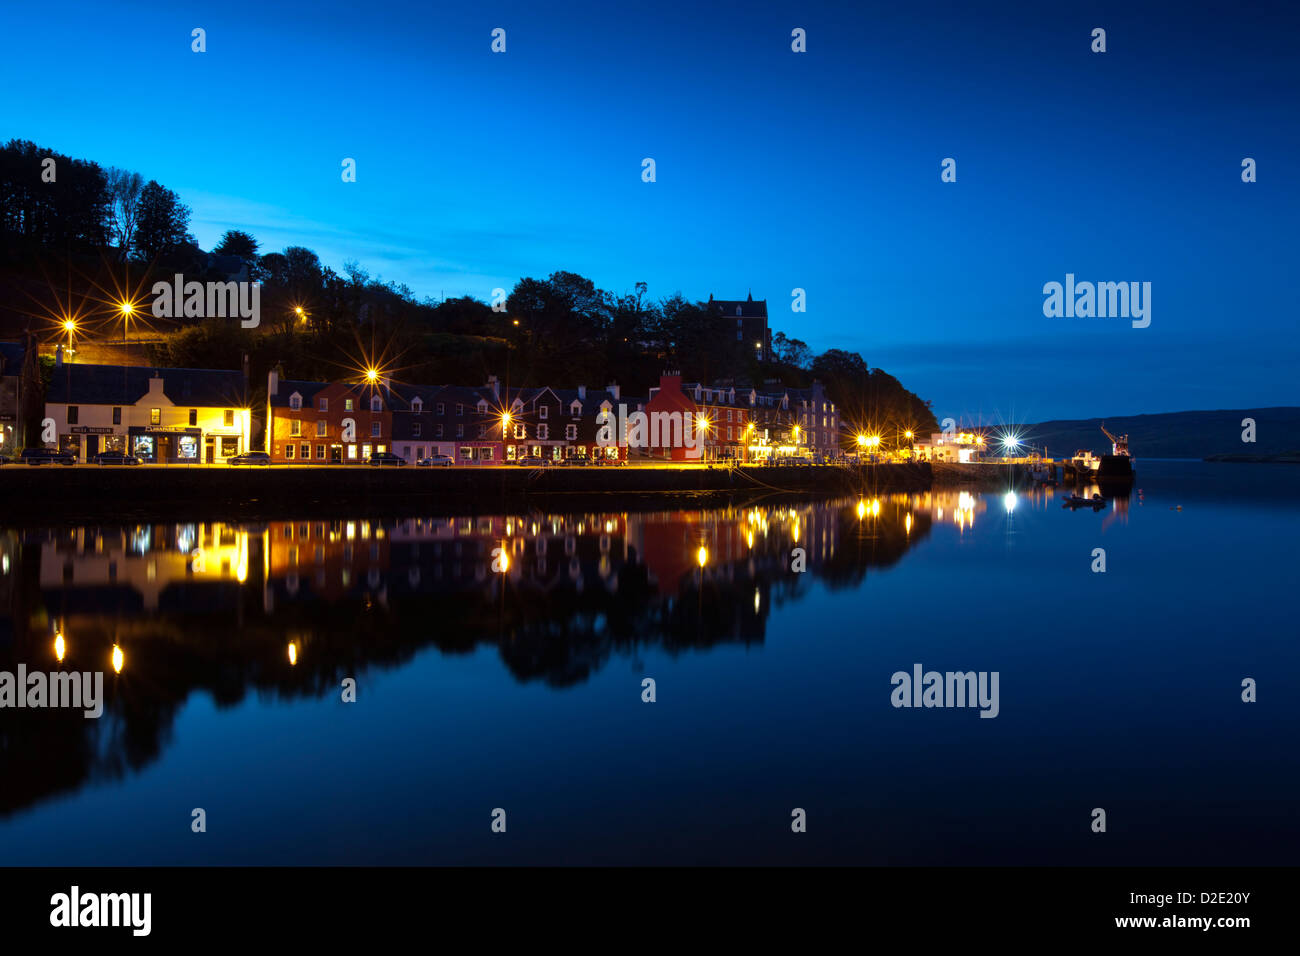 Tobermory harbour by night, Isle of Mull, Scotland. - Stock Image